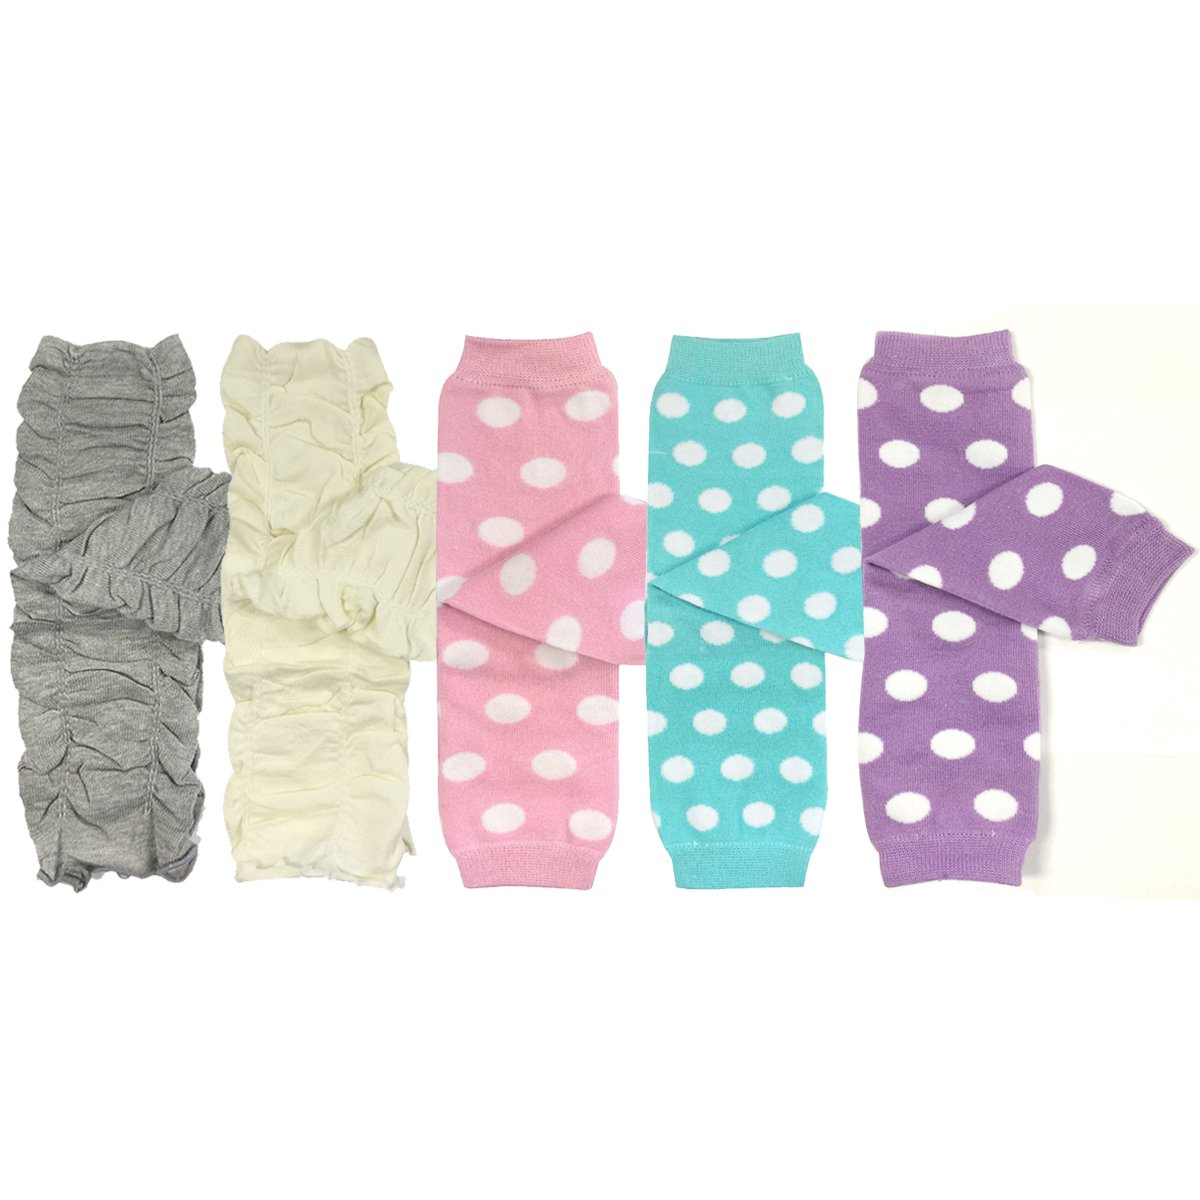 Bowbear Set of 5 Baby & Toddler Leg Warmer Collection Premium Value Pack C69516